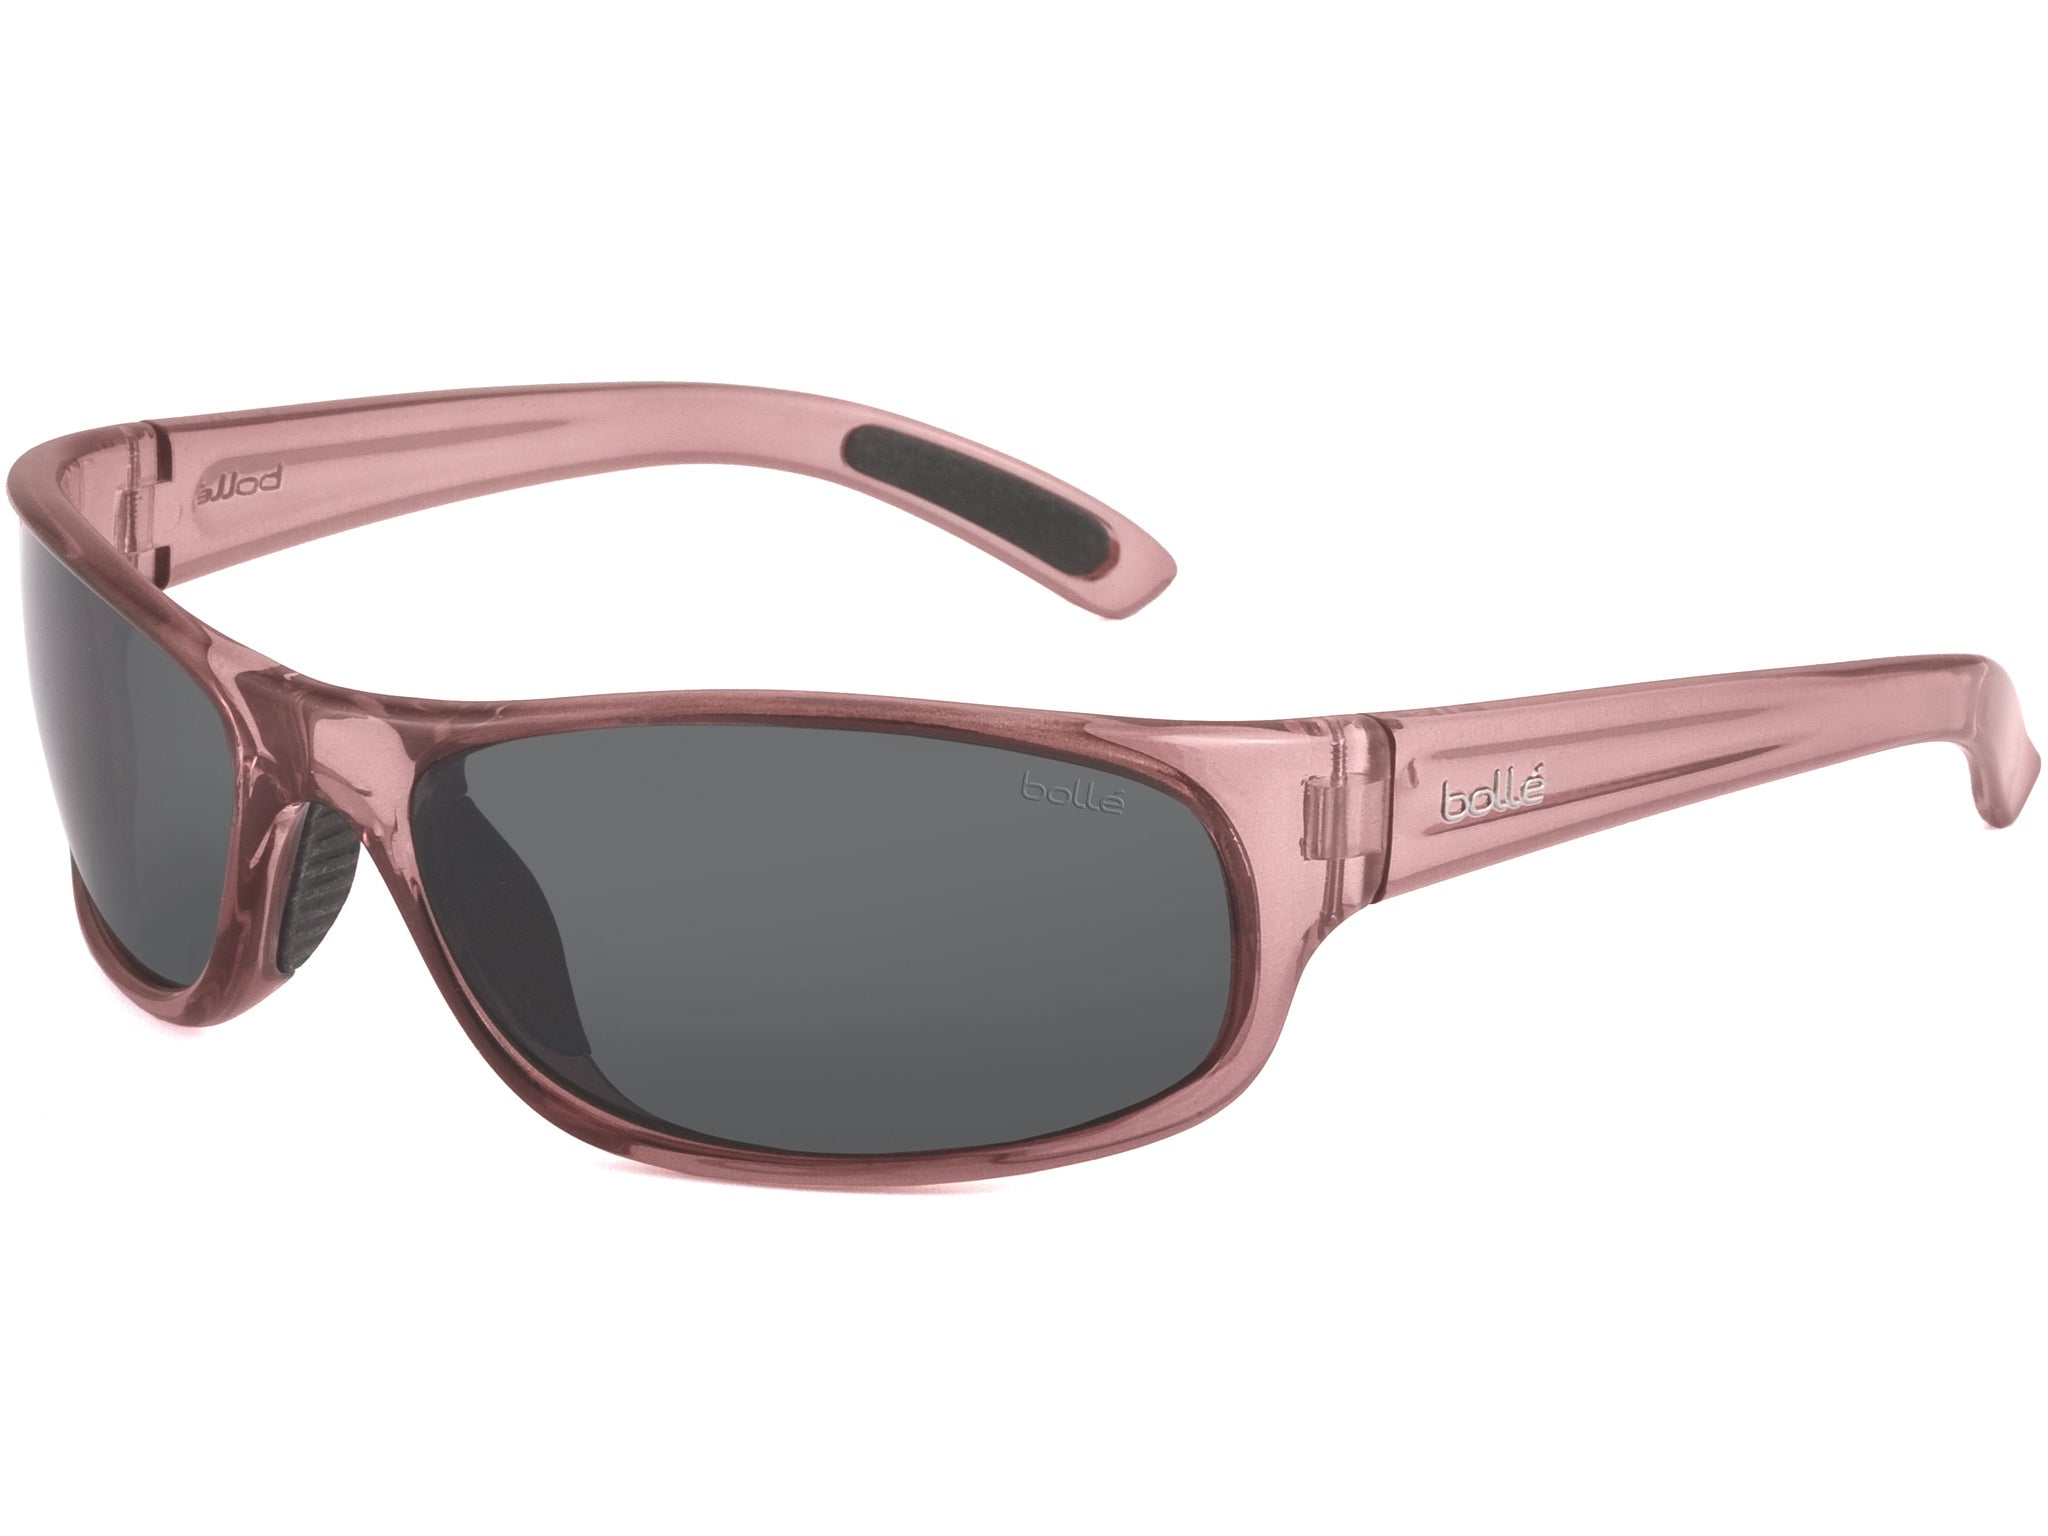 11 best sunglasses for kids | The Independent